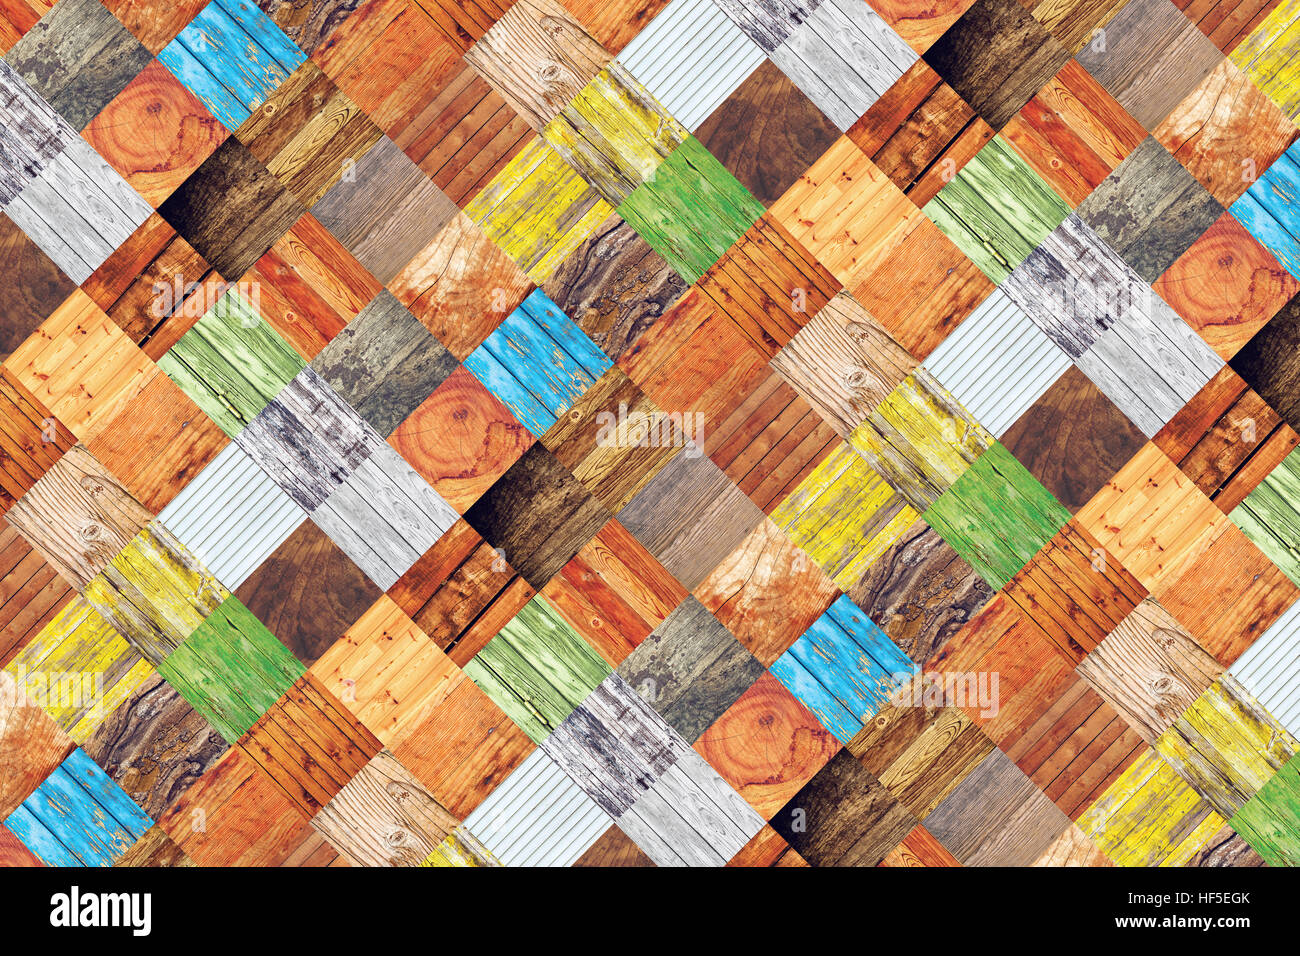 Collage of different wood texture samples in square format - Stock Image